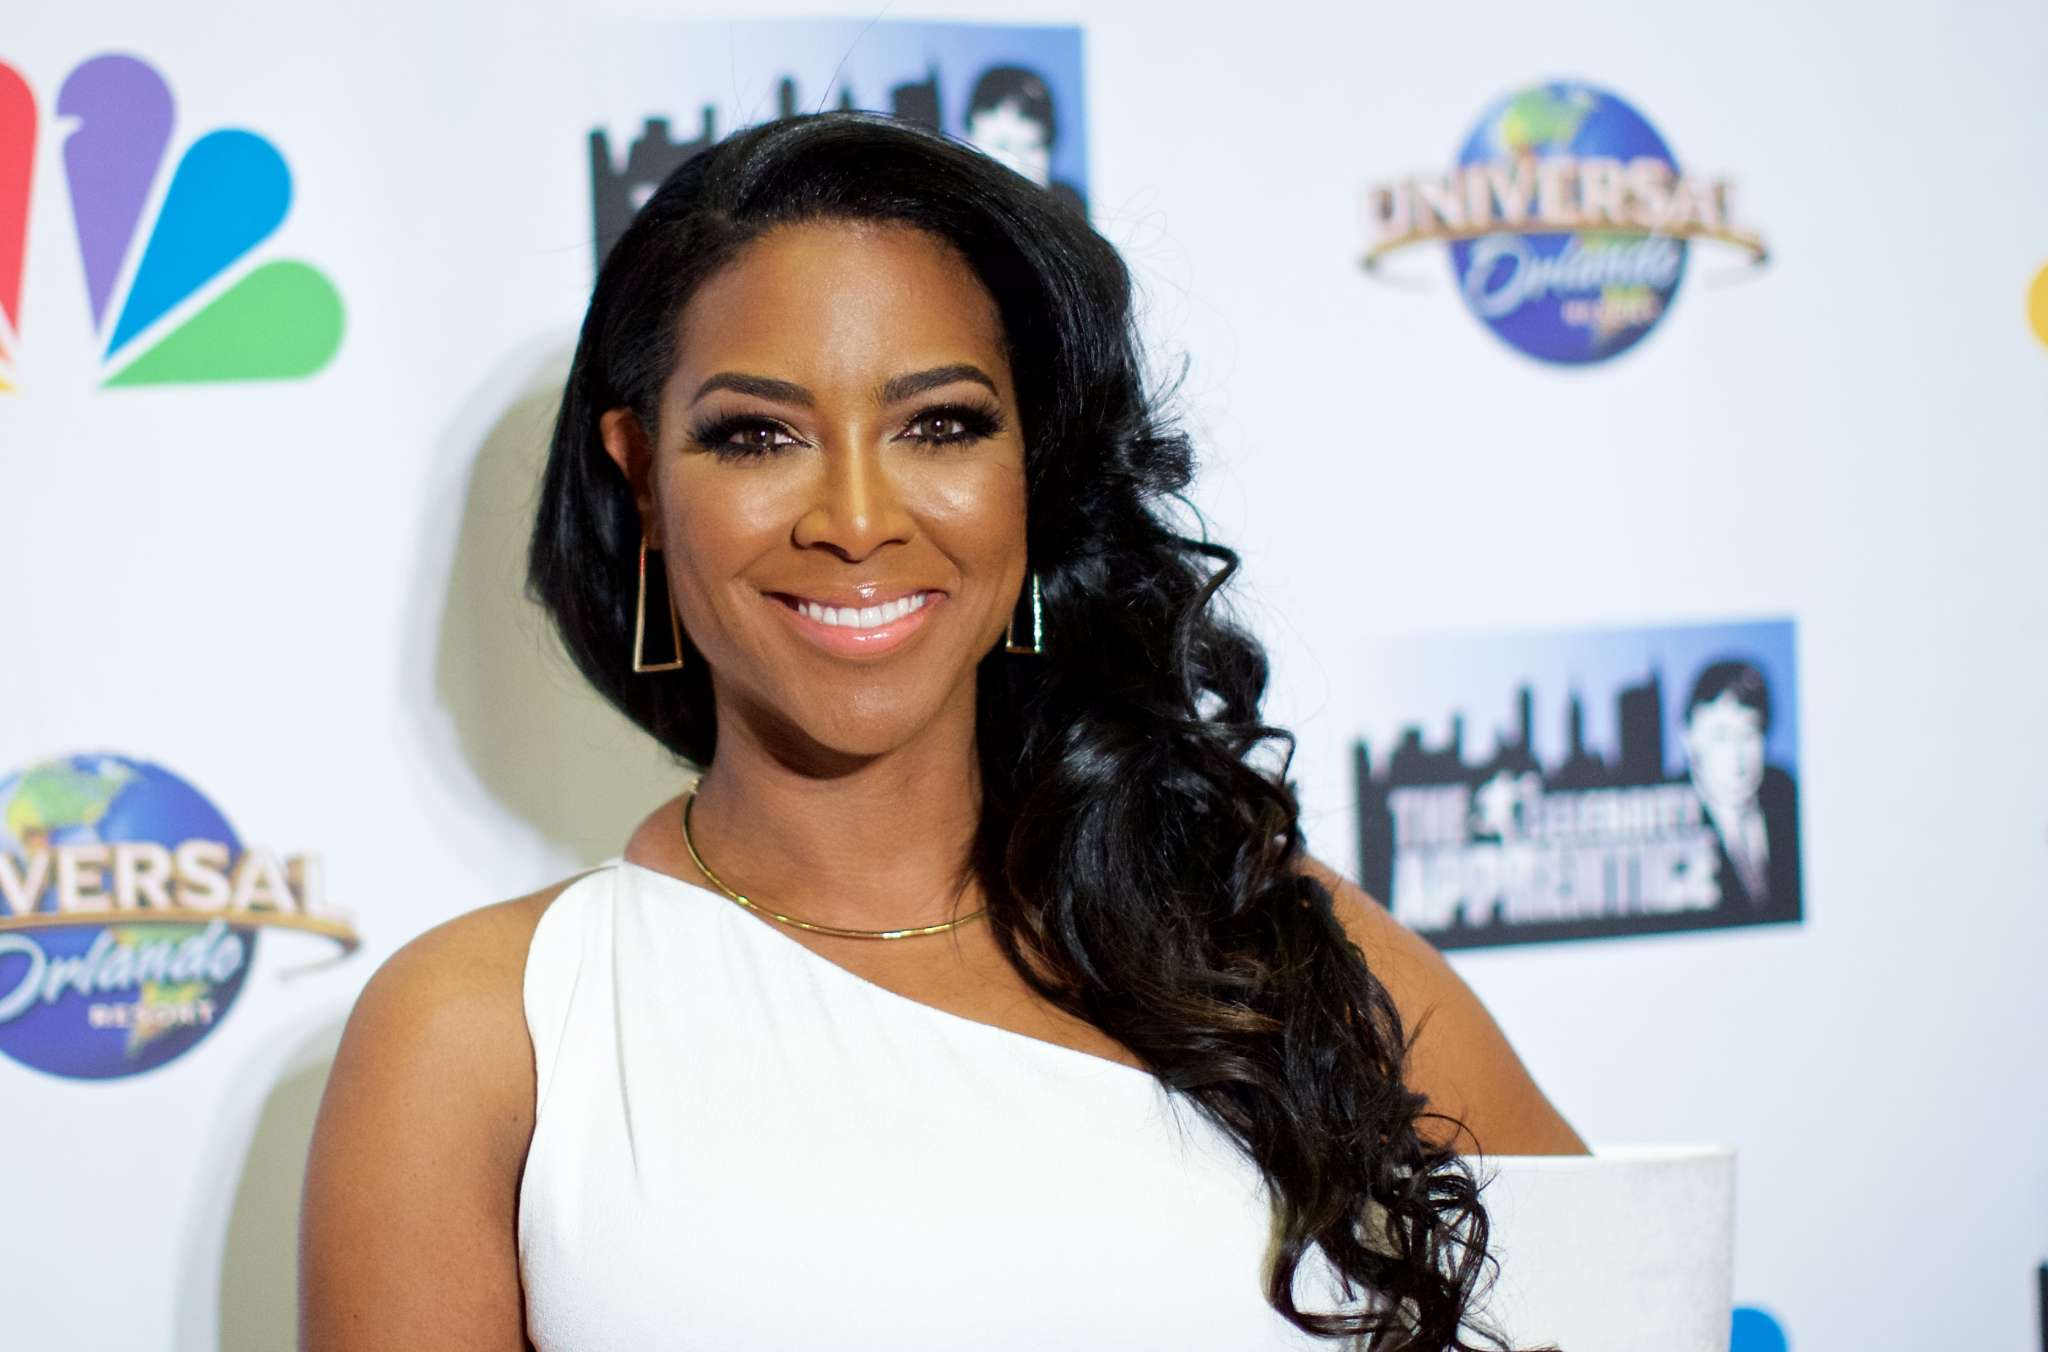 Kenya Moore Gushes Over Claudia Jordan's No Makeup Look But Fans Are Not Here For It